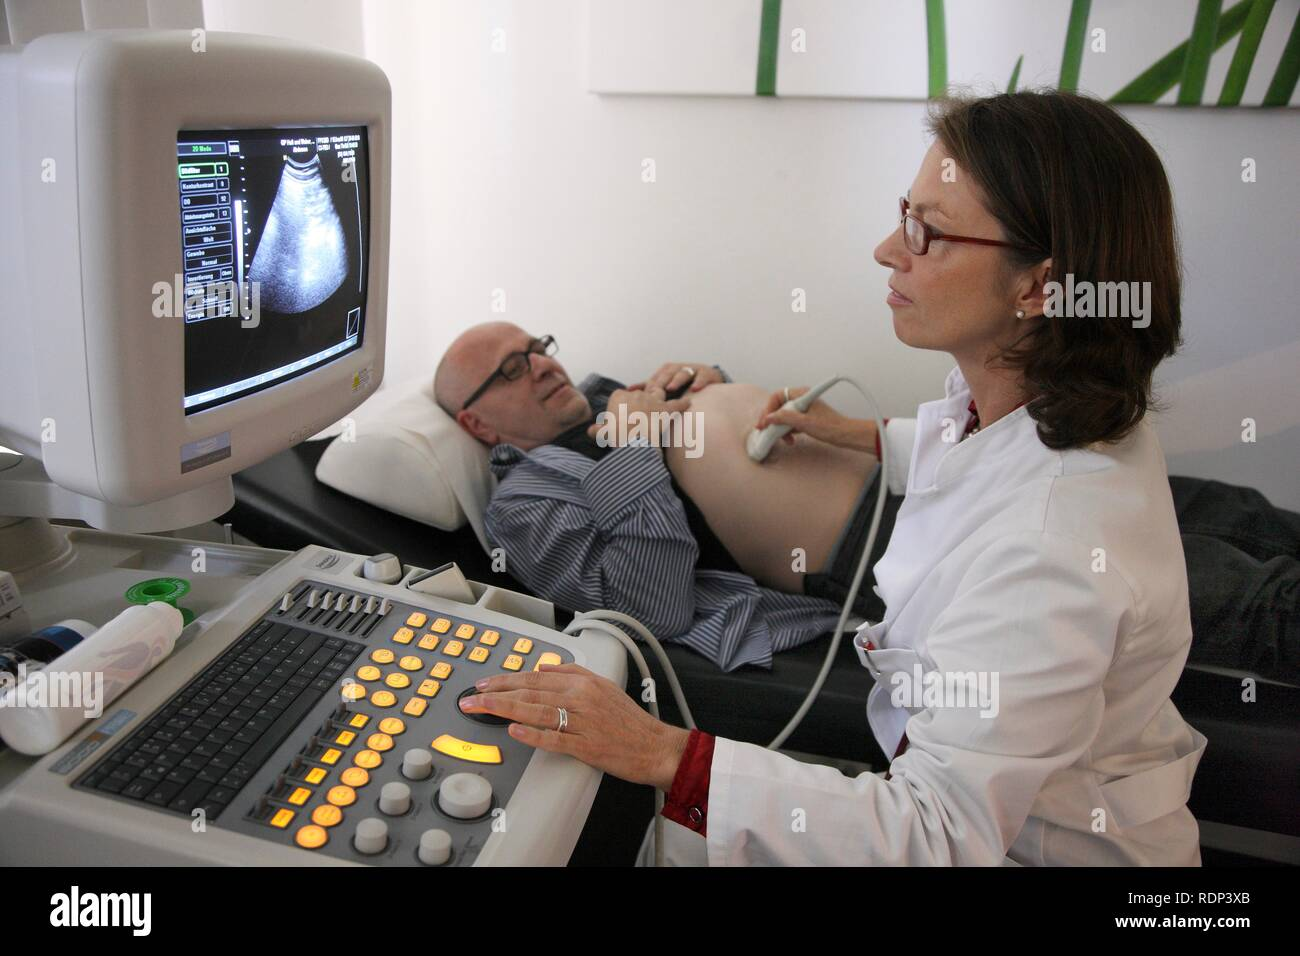 Medical practice, doctor with patient, ultrasonography, ultrasound scanning - Stock Image